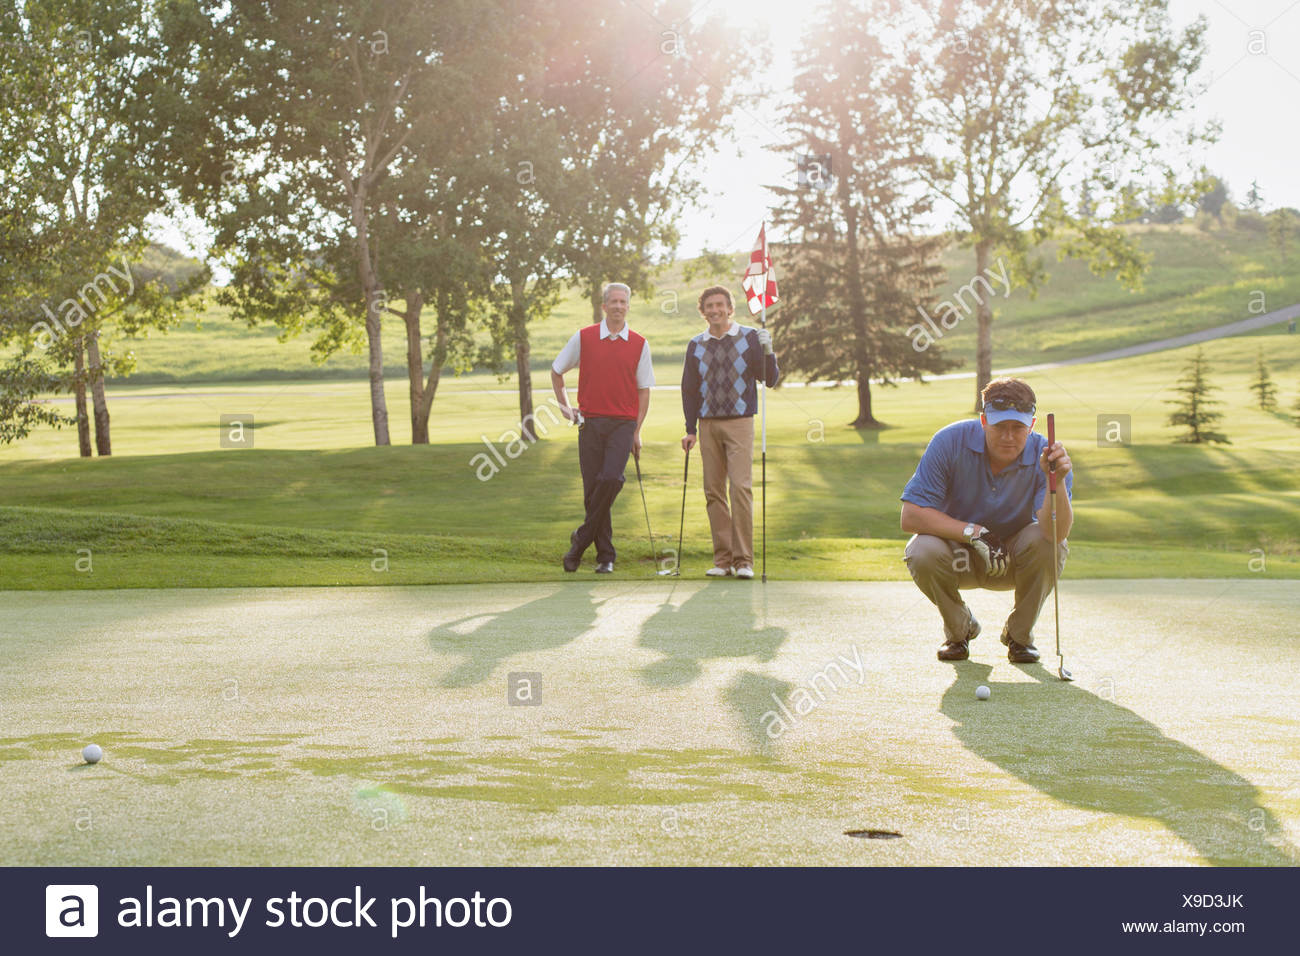 golfer focussed on putt while friends watch Stock Photo